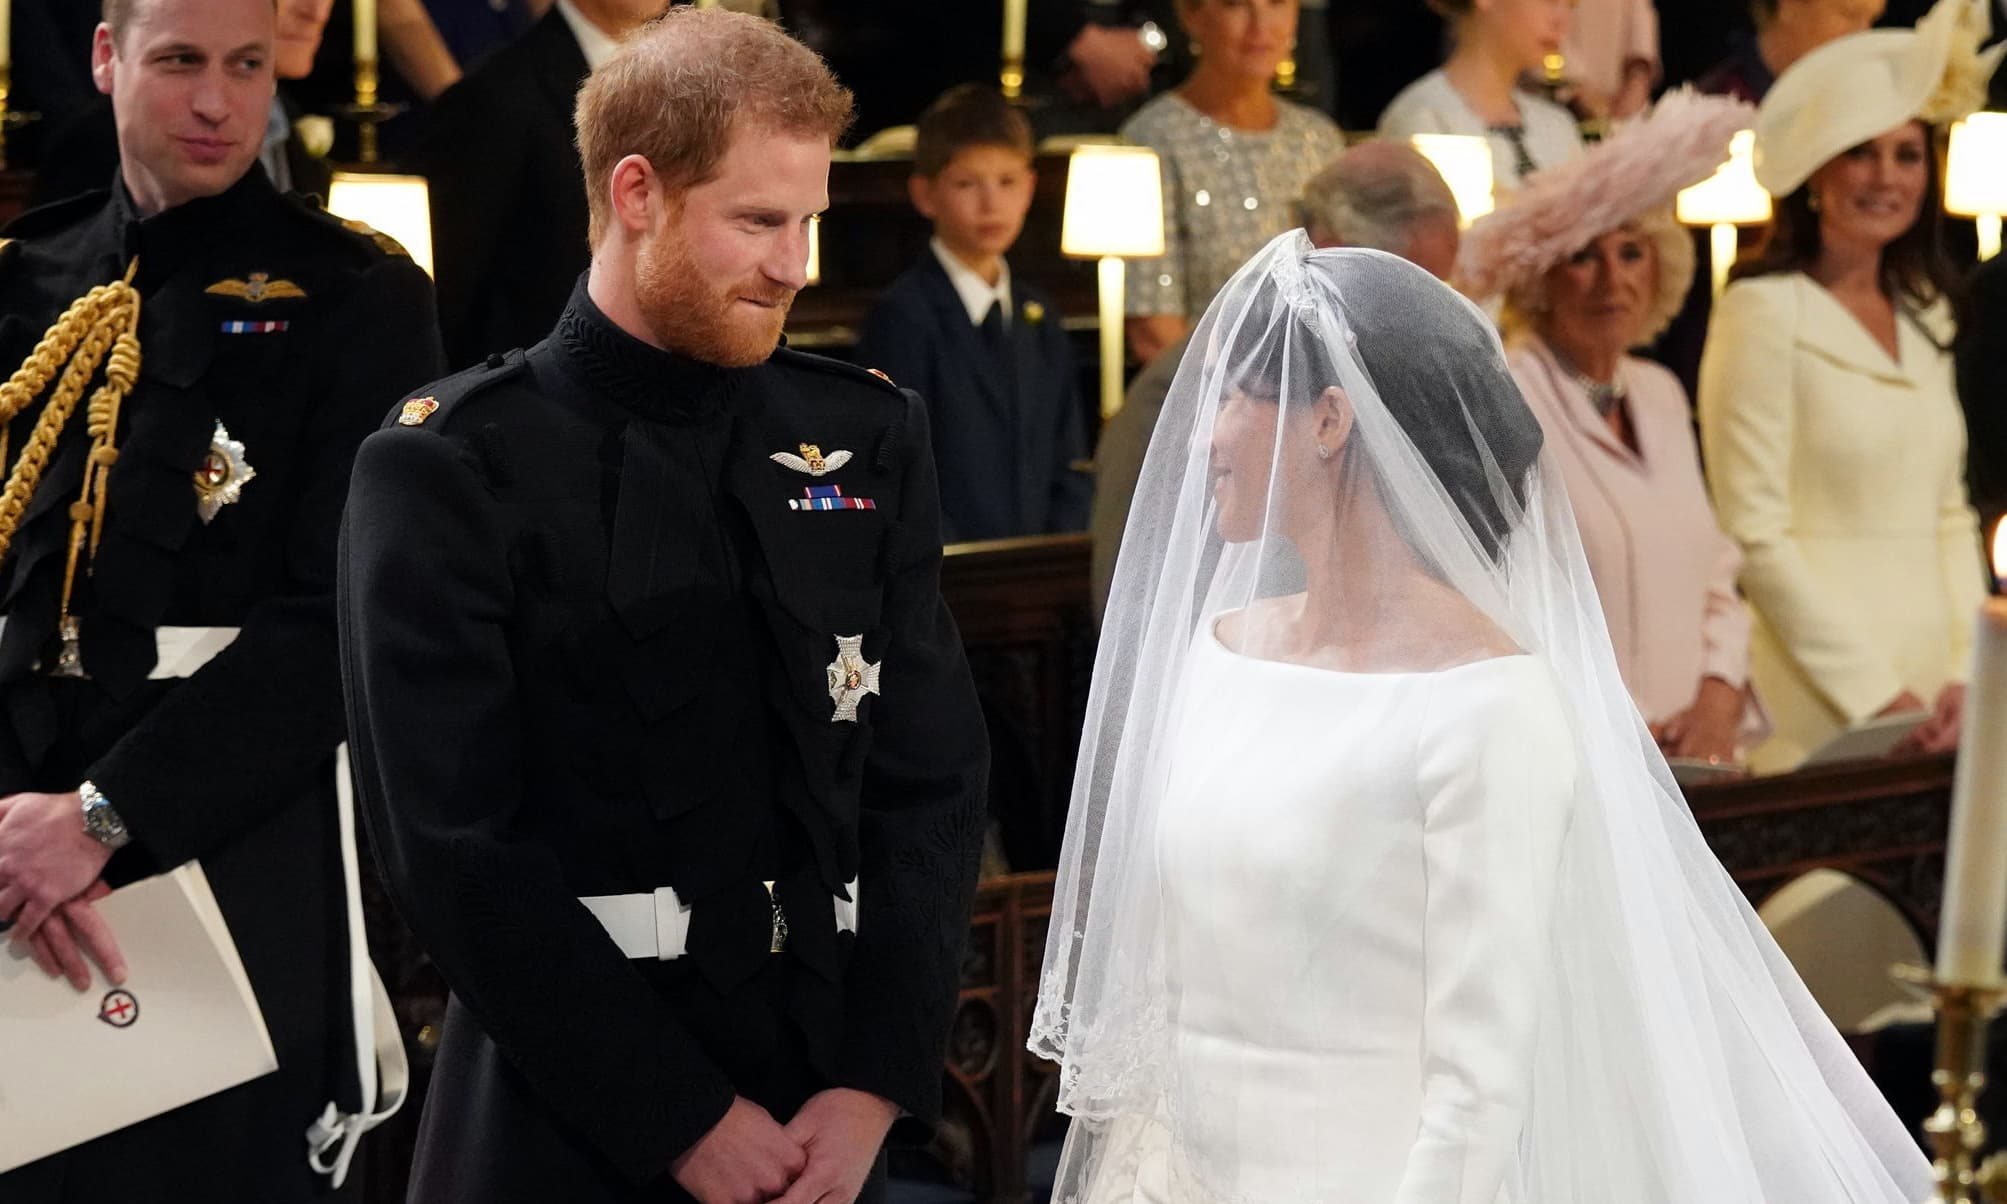 Britain's Prince Harry looks at his bride, Meghan Markle, during their wedding ceremony at St. George's Chapel. — AP